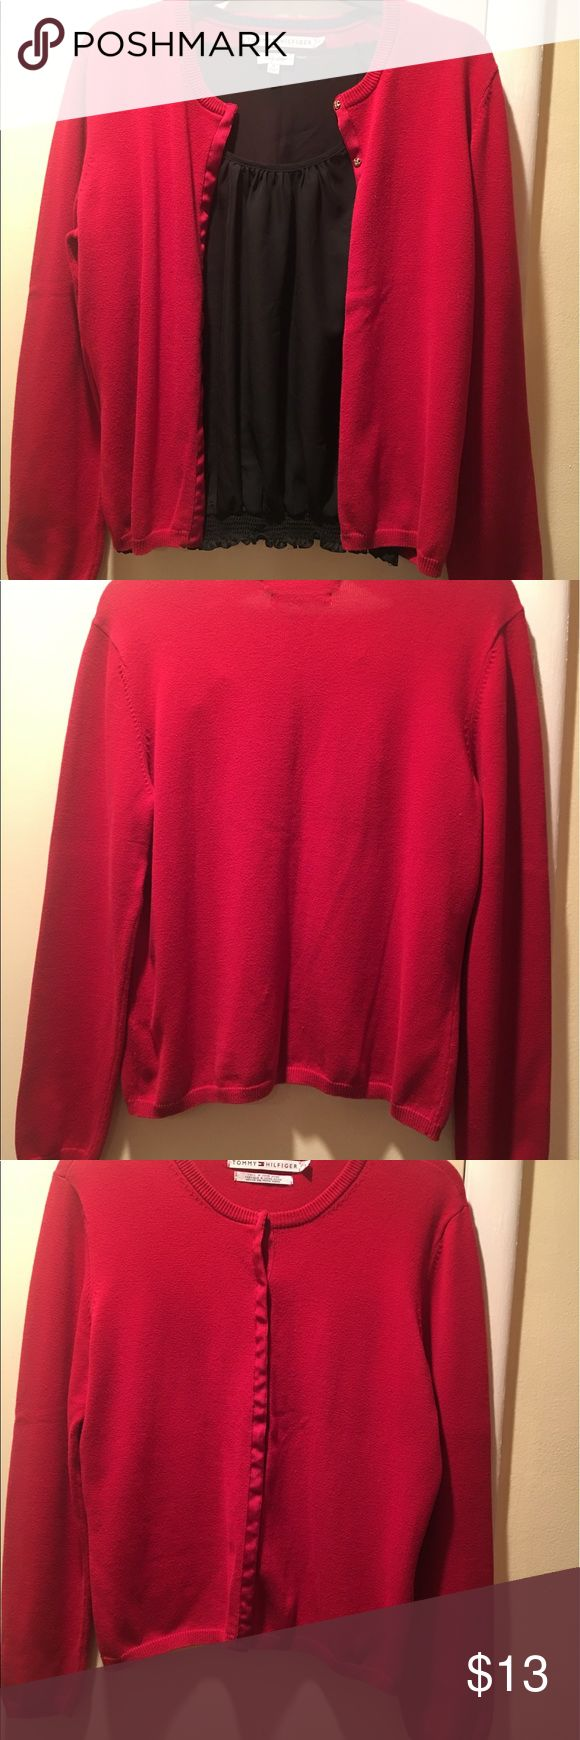 Cardigan tops Red cardigan  sweater, 87% cotton, 11% nylon and 2% spandex. Tommy Hilfiger Sweaters Cardigans